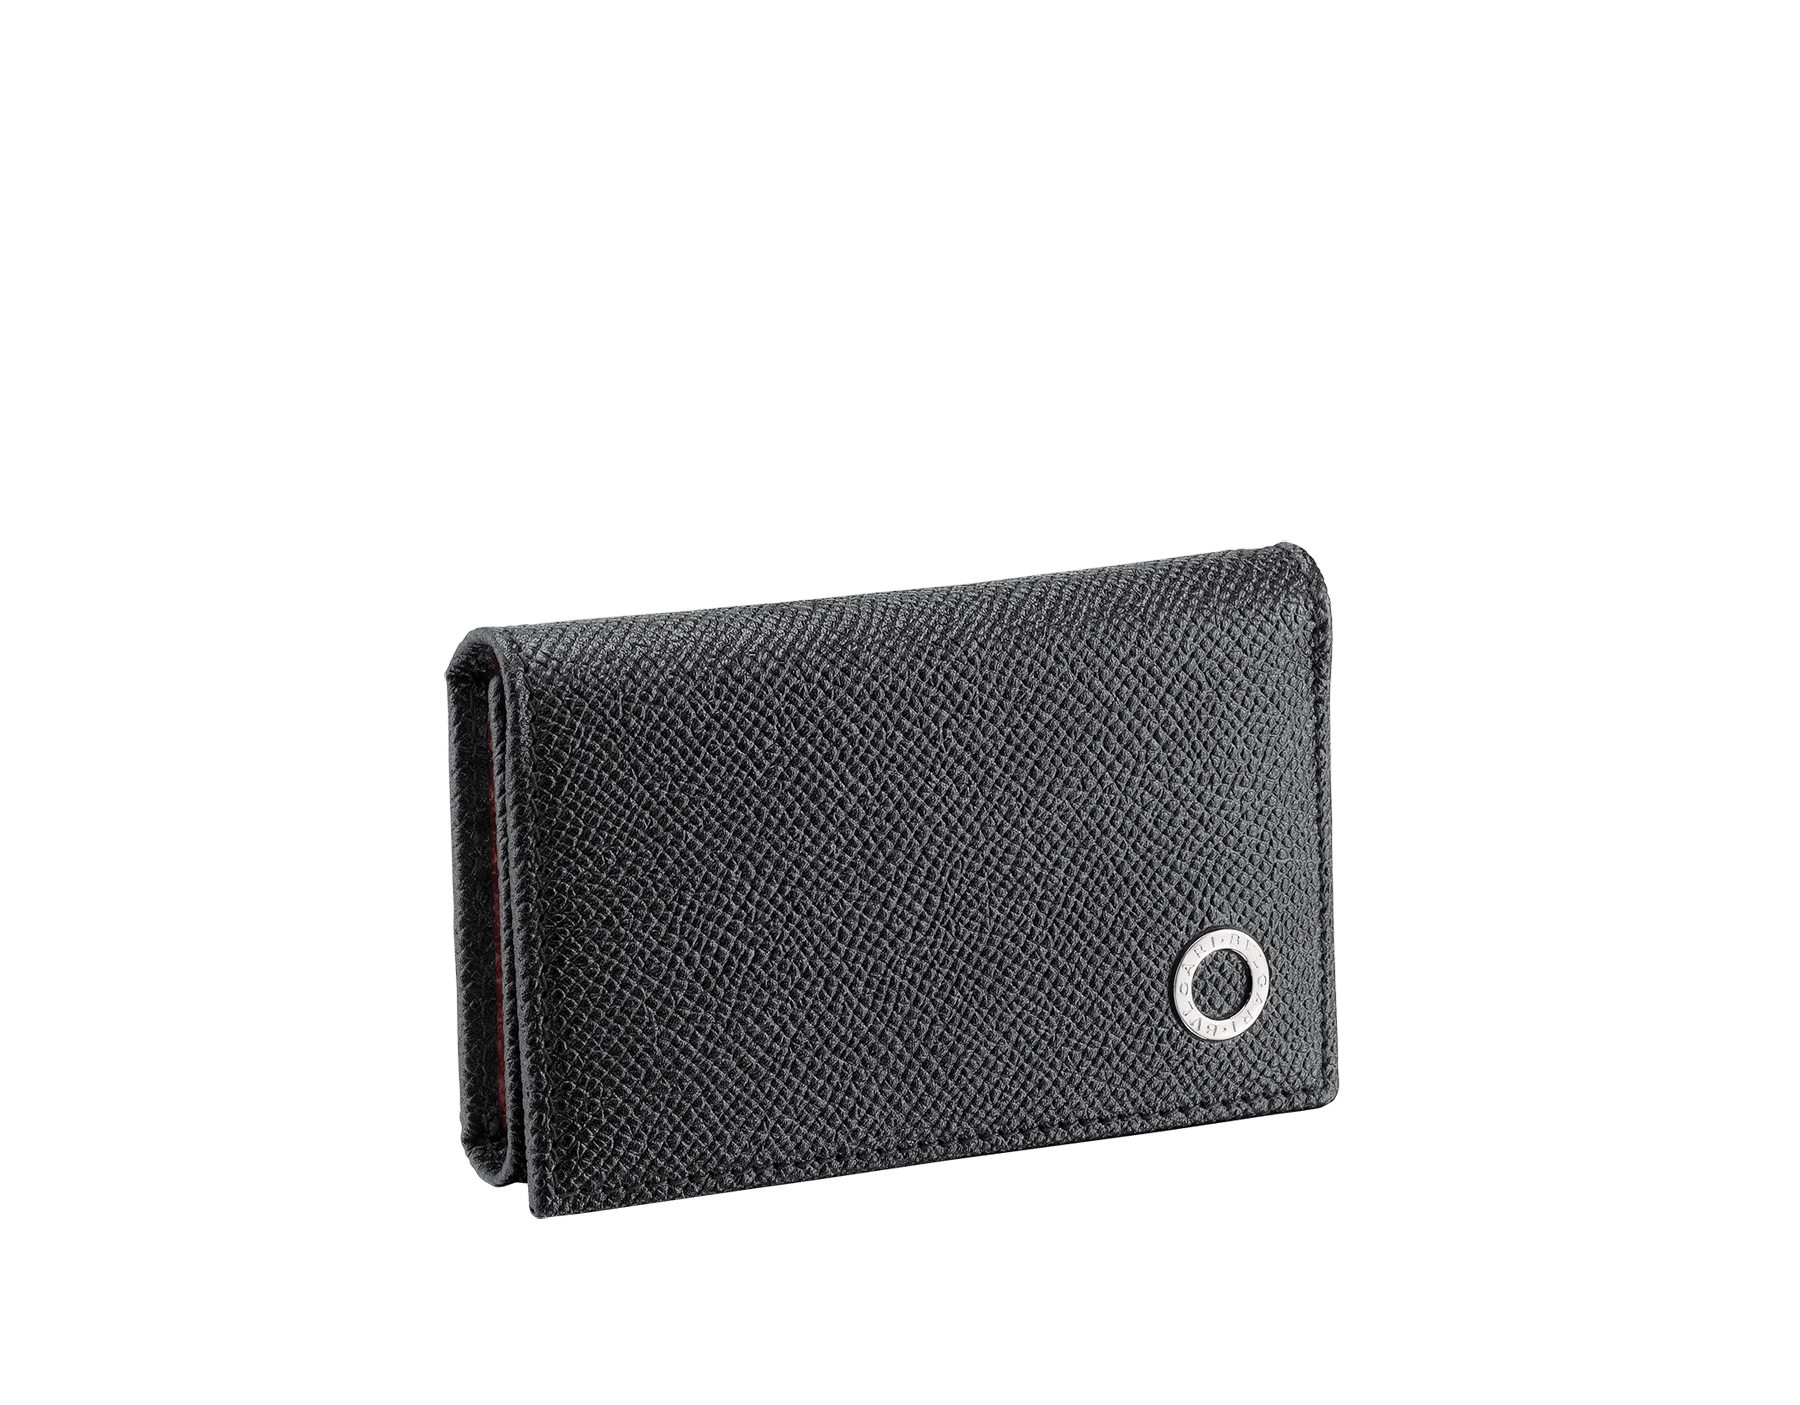 Small keyholder in black and ruby red grain calf leather with brass palladium plated hardware featuring the BVLGARI BVLGARI motif. 288305 image 1